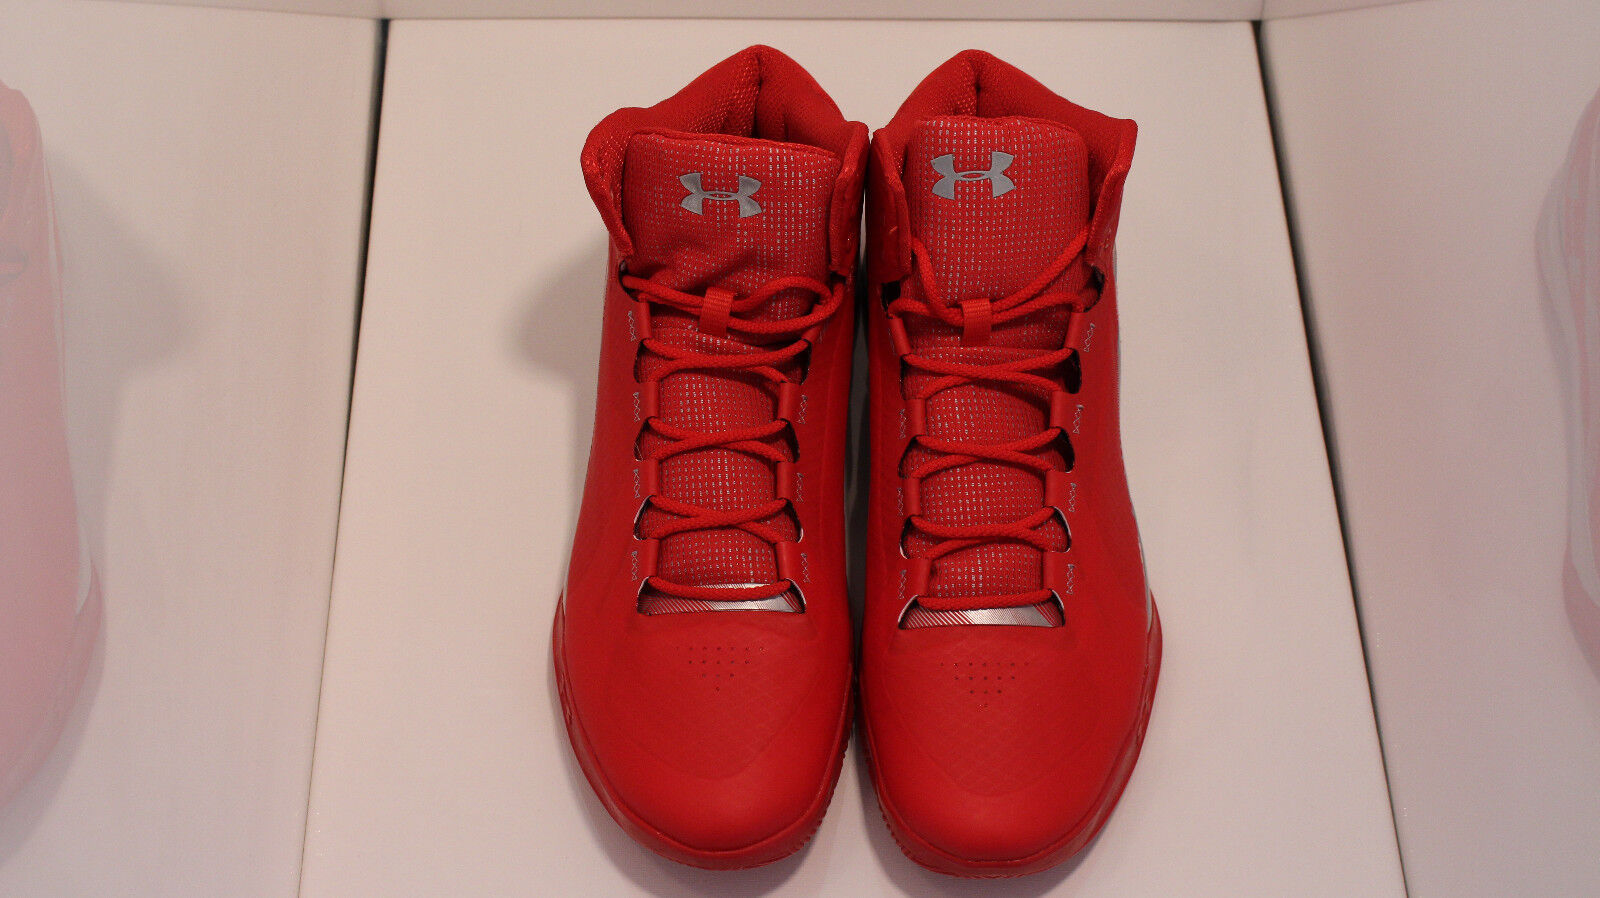 Under Armour Uomo Charged rosso High Top Basketball scarpe scarpe scarpe Sz 13.5 57a58c